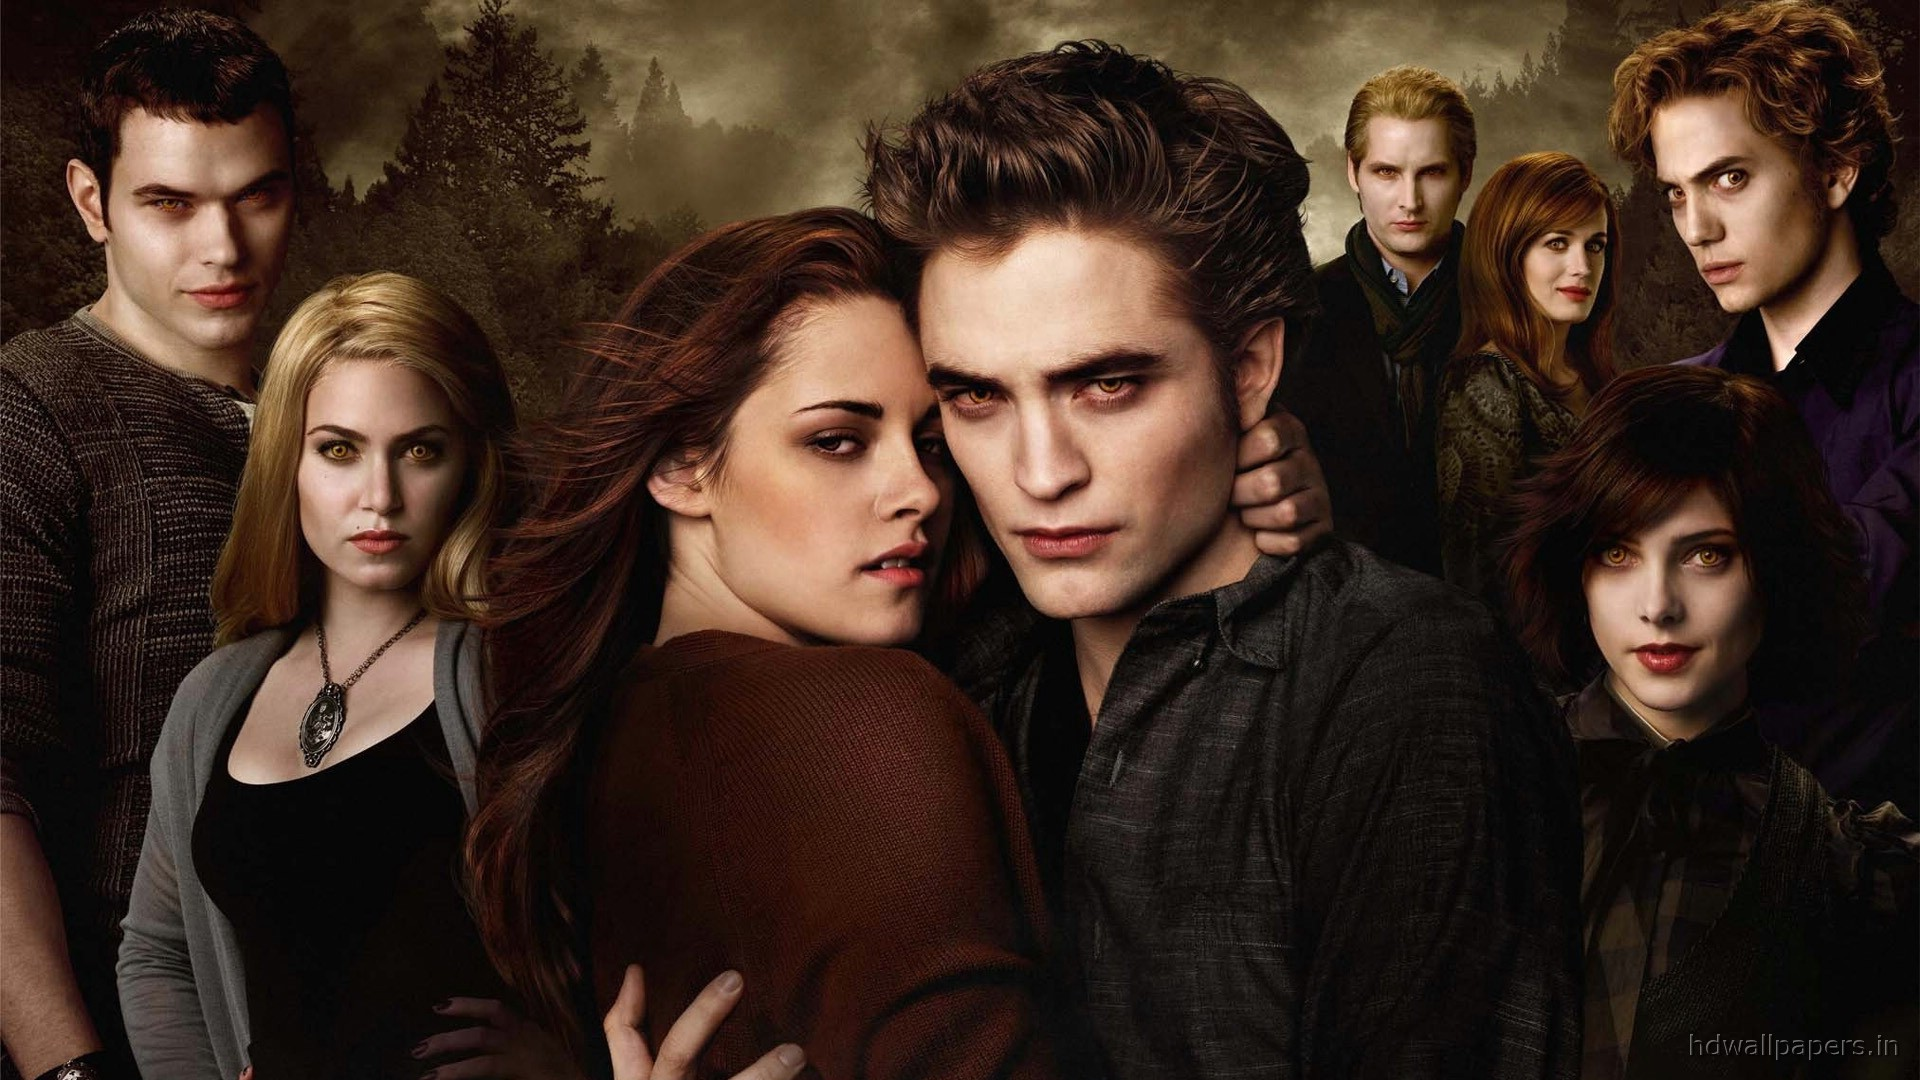 Twilight Saga Breaking Dawn 500.39 Kb